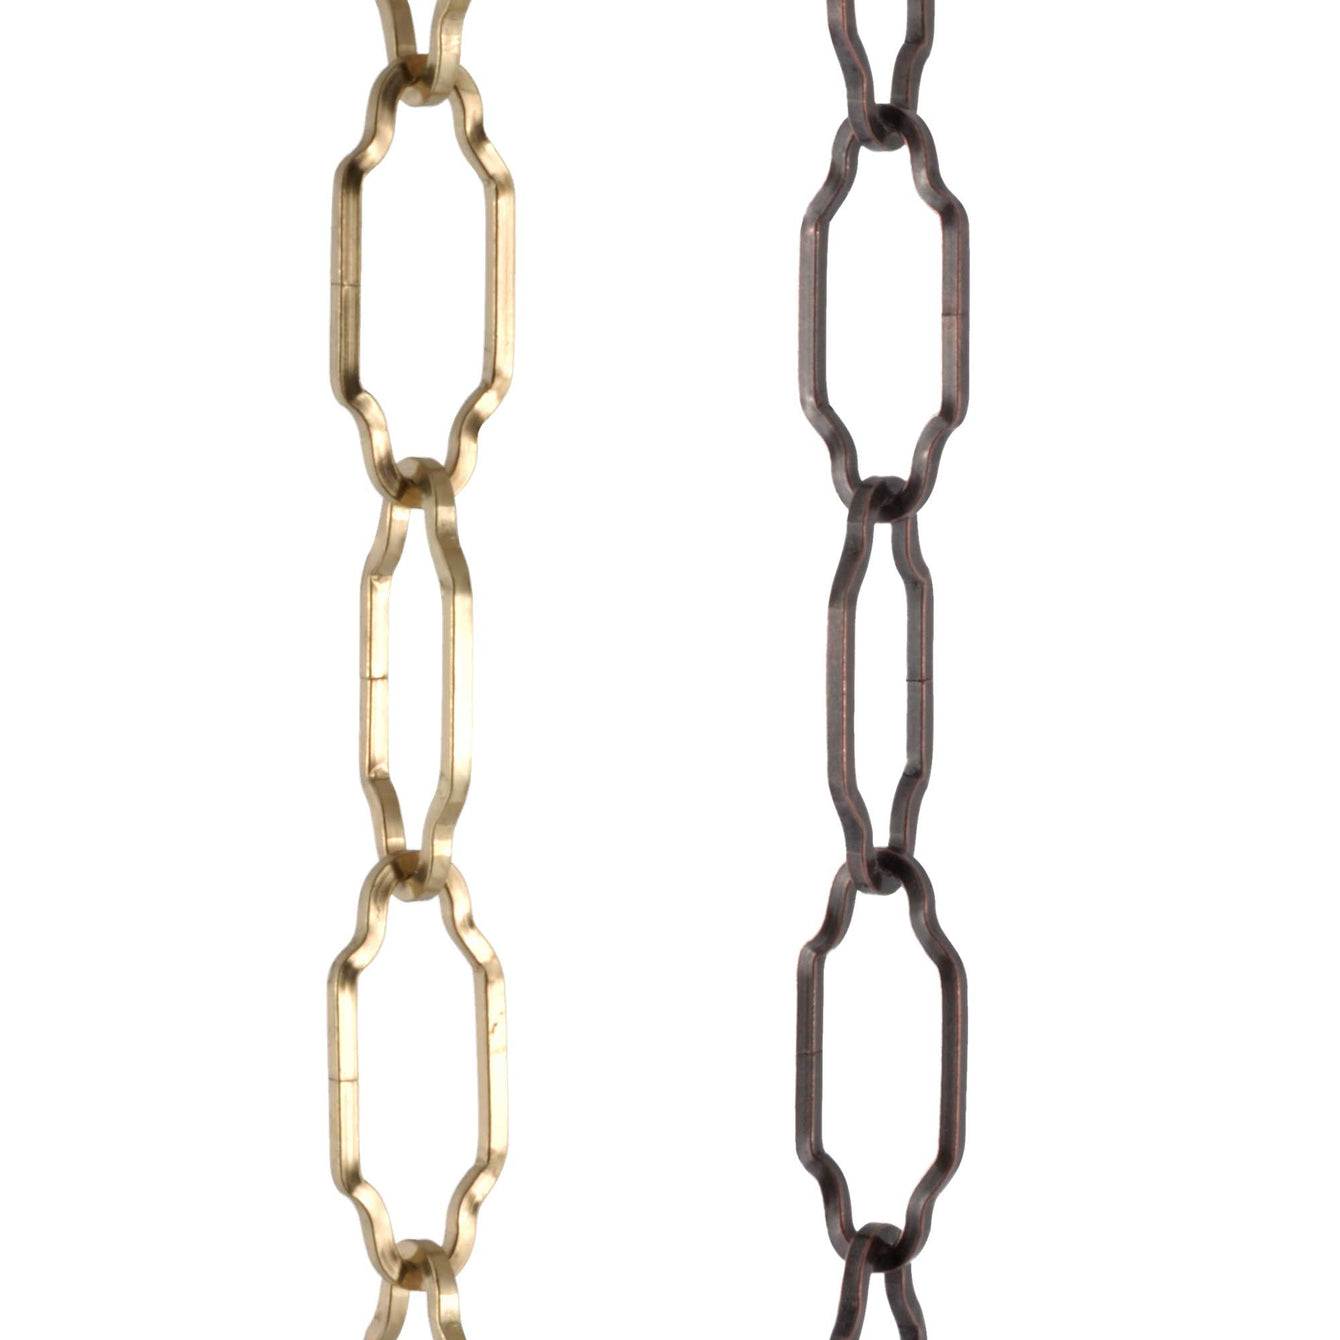 ElekTek Brass Gothic Open Link Chain for Chandelier & Lighting 45mm x 19mm Per Linear Metre - Buy It Better Brass